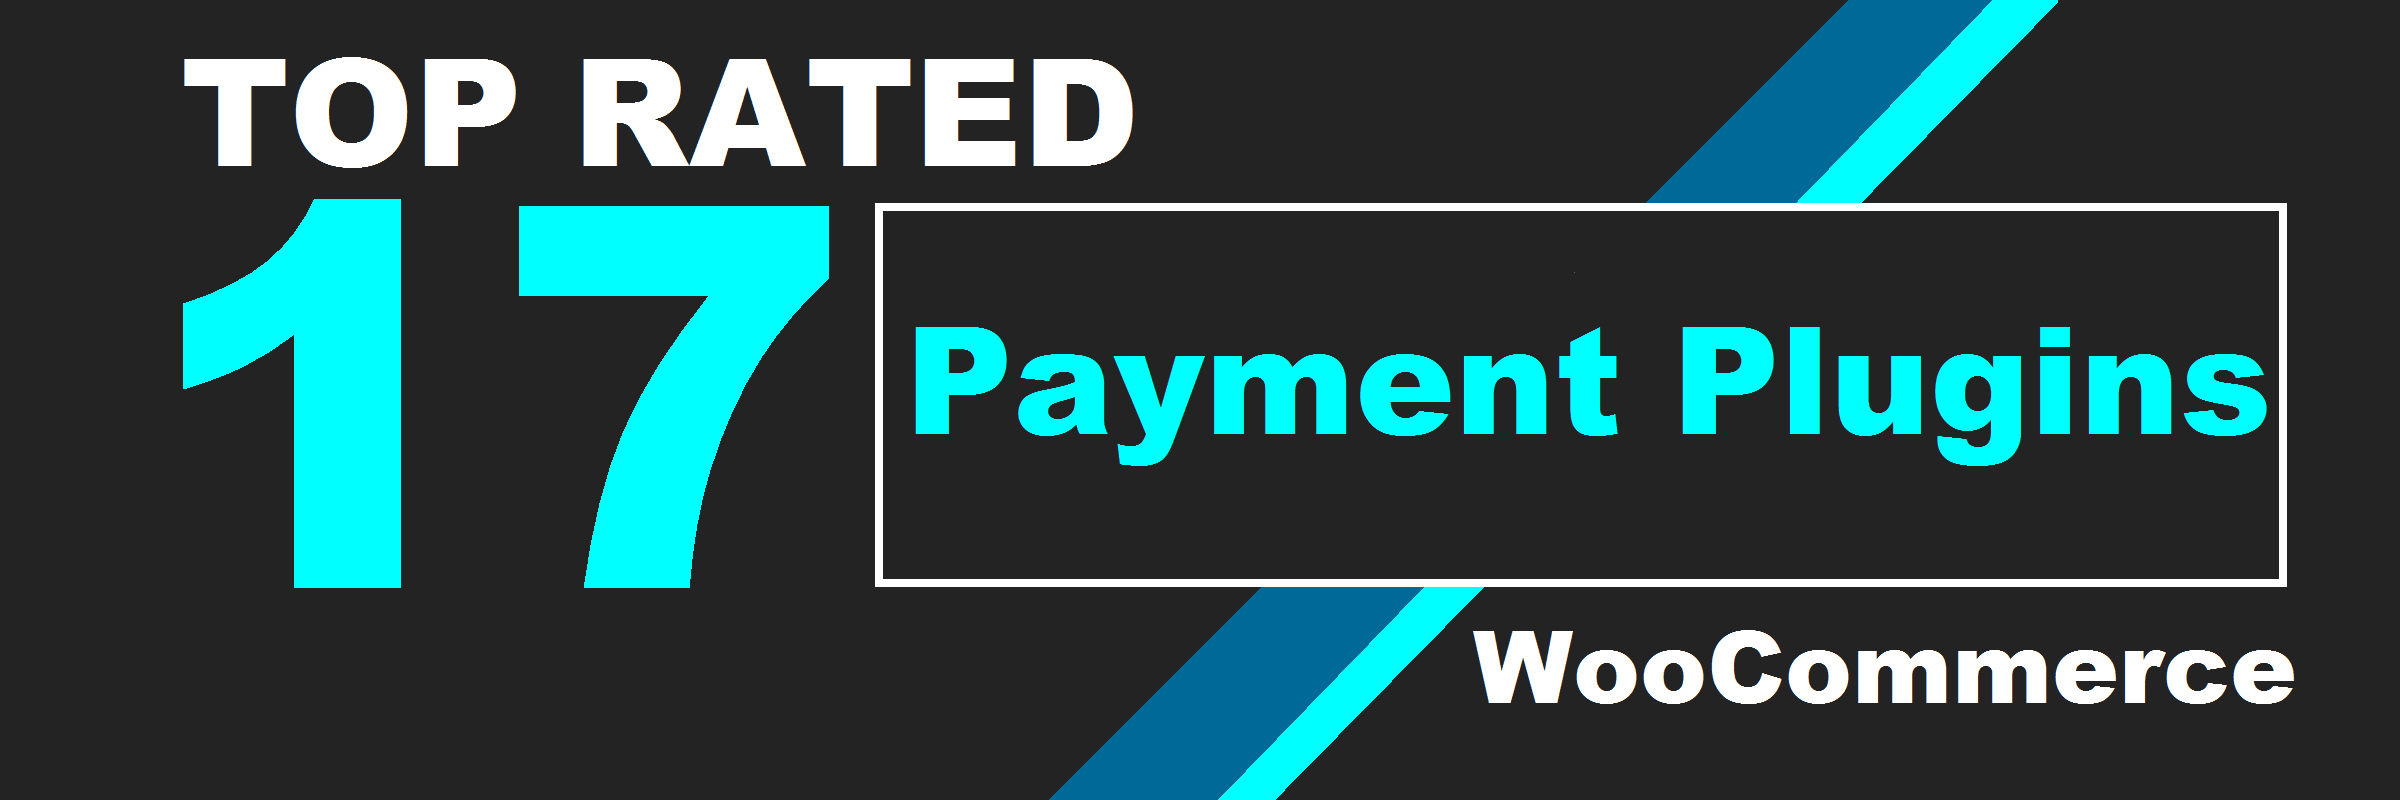 17 Top Rated Payment Gateway Plugins For WooCommerce